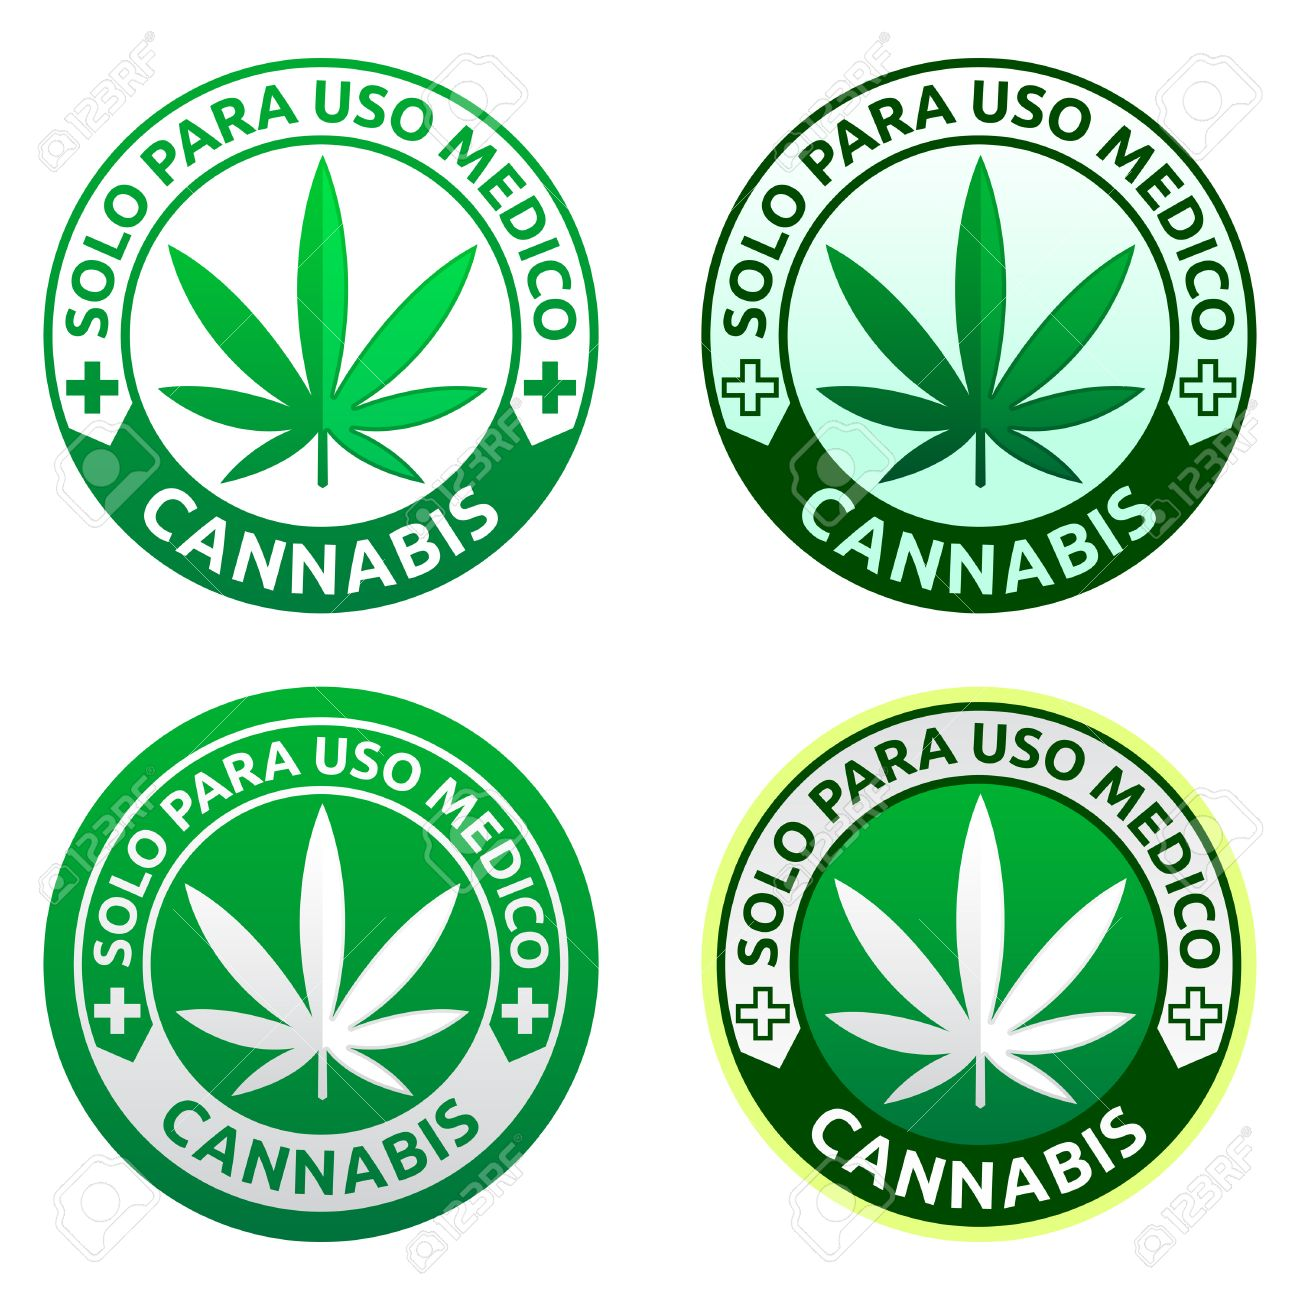 Cannabis, Solo para uso medico - Only for medical use spanish text, Medical Marijuana emblem collection, icon for medical dispensary - 60150685